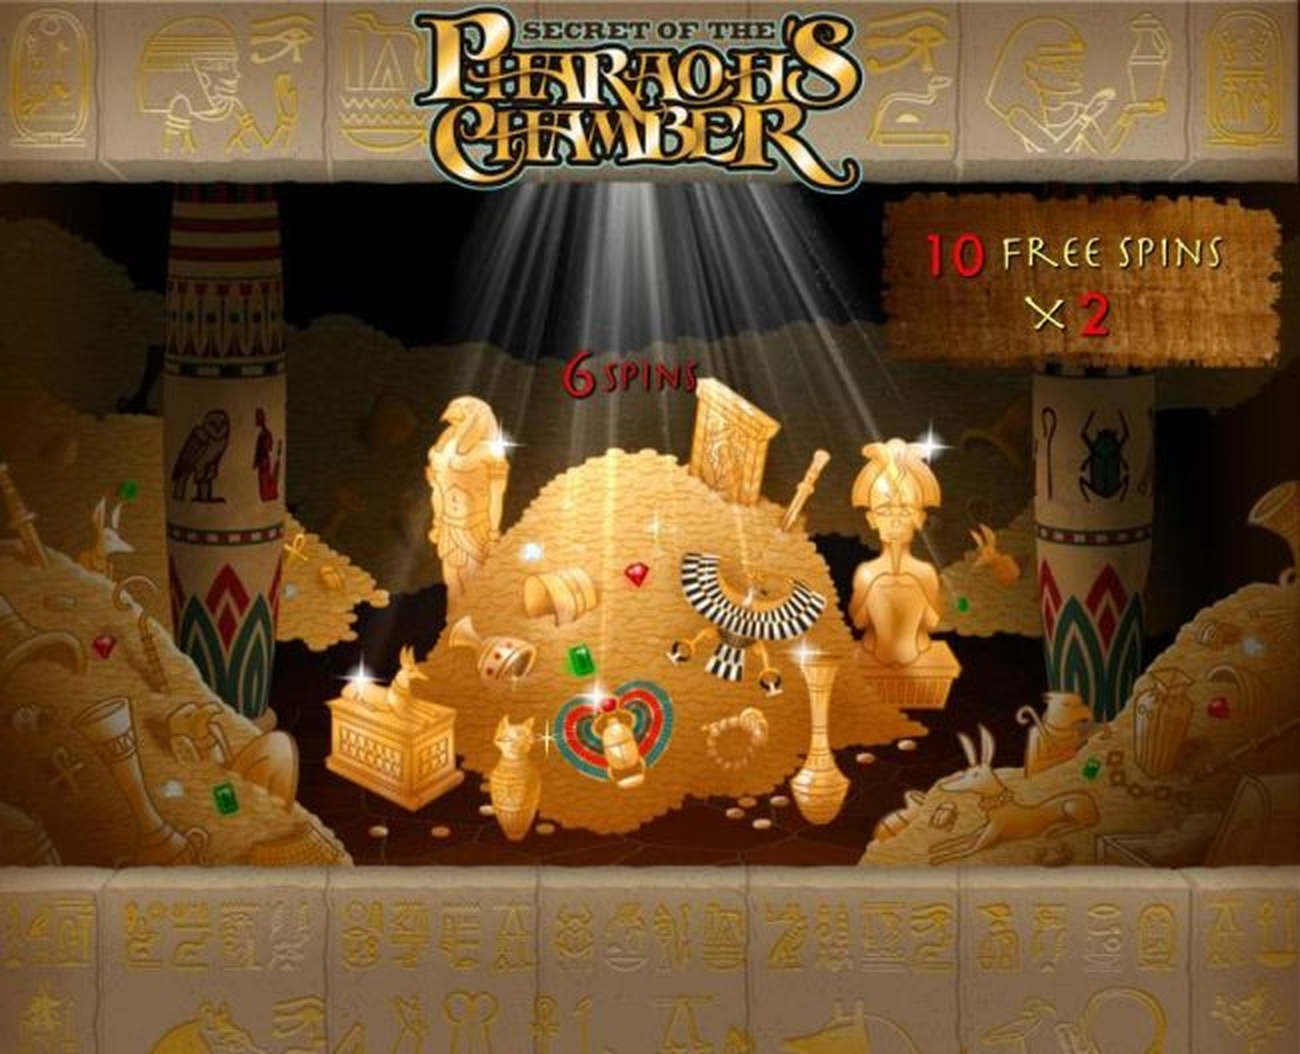 The Secret of the Pharaoh's Chamber Online Slot Demo Game by Gamesys